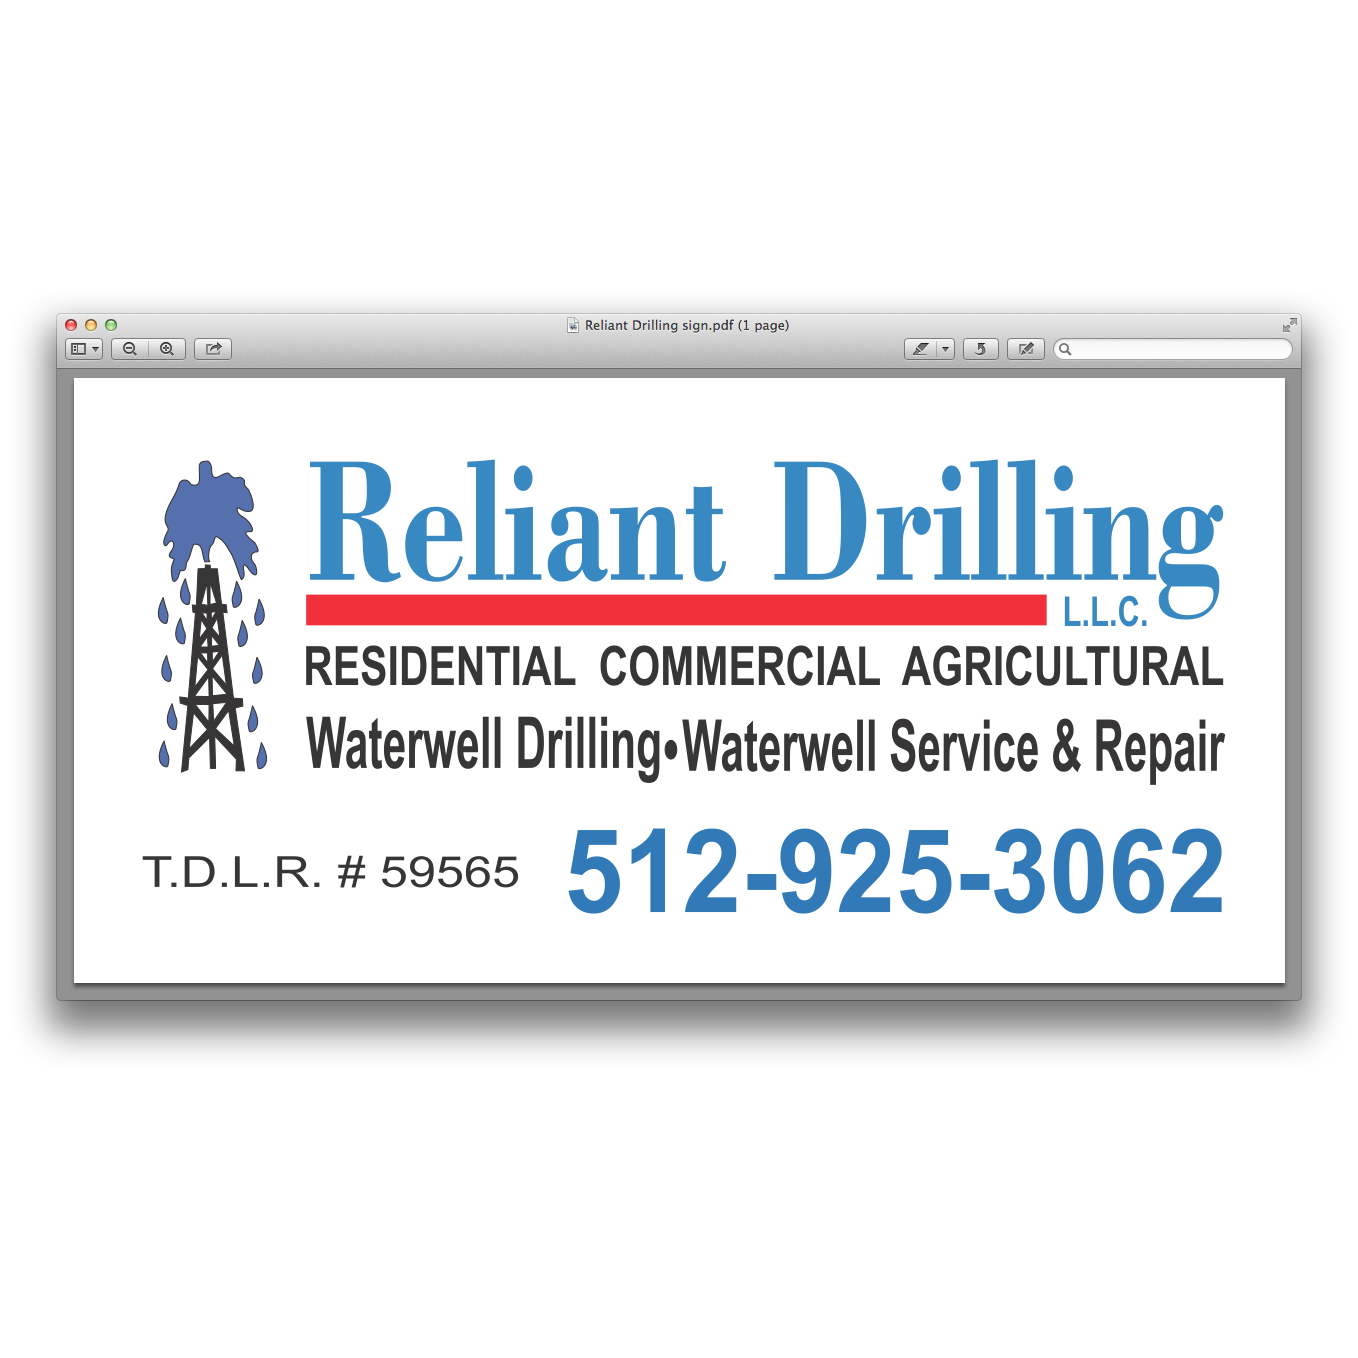 Reliant Drilling image 3